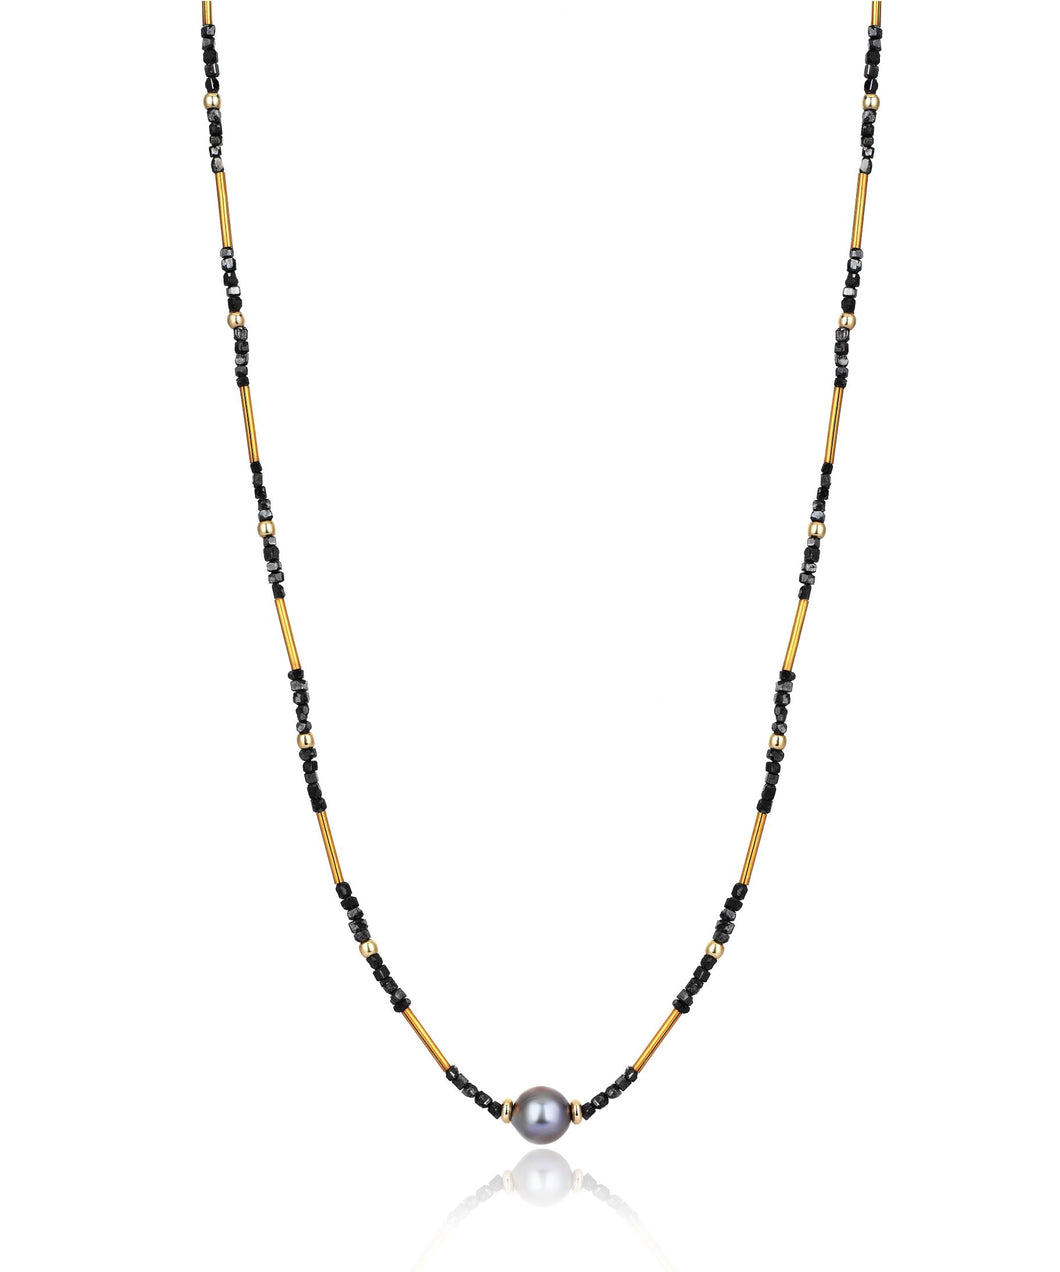 14K Gold Black Diamond Tahitian Pearl Necklace